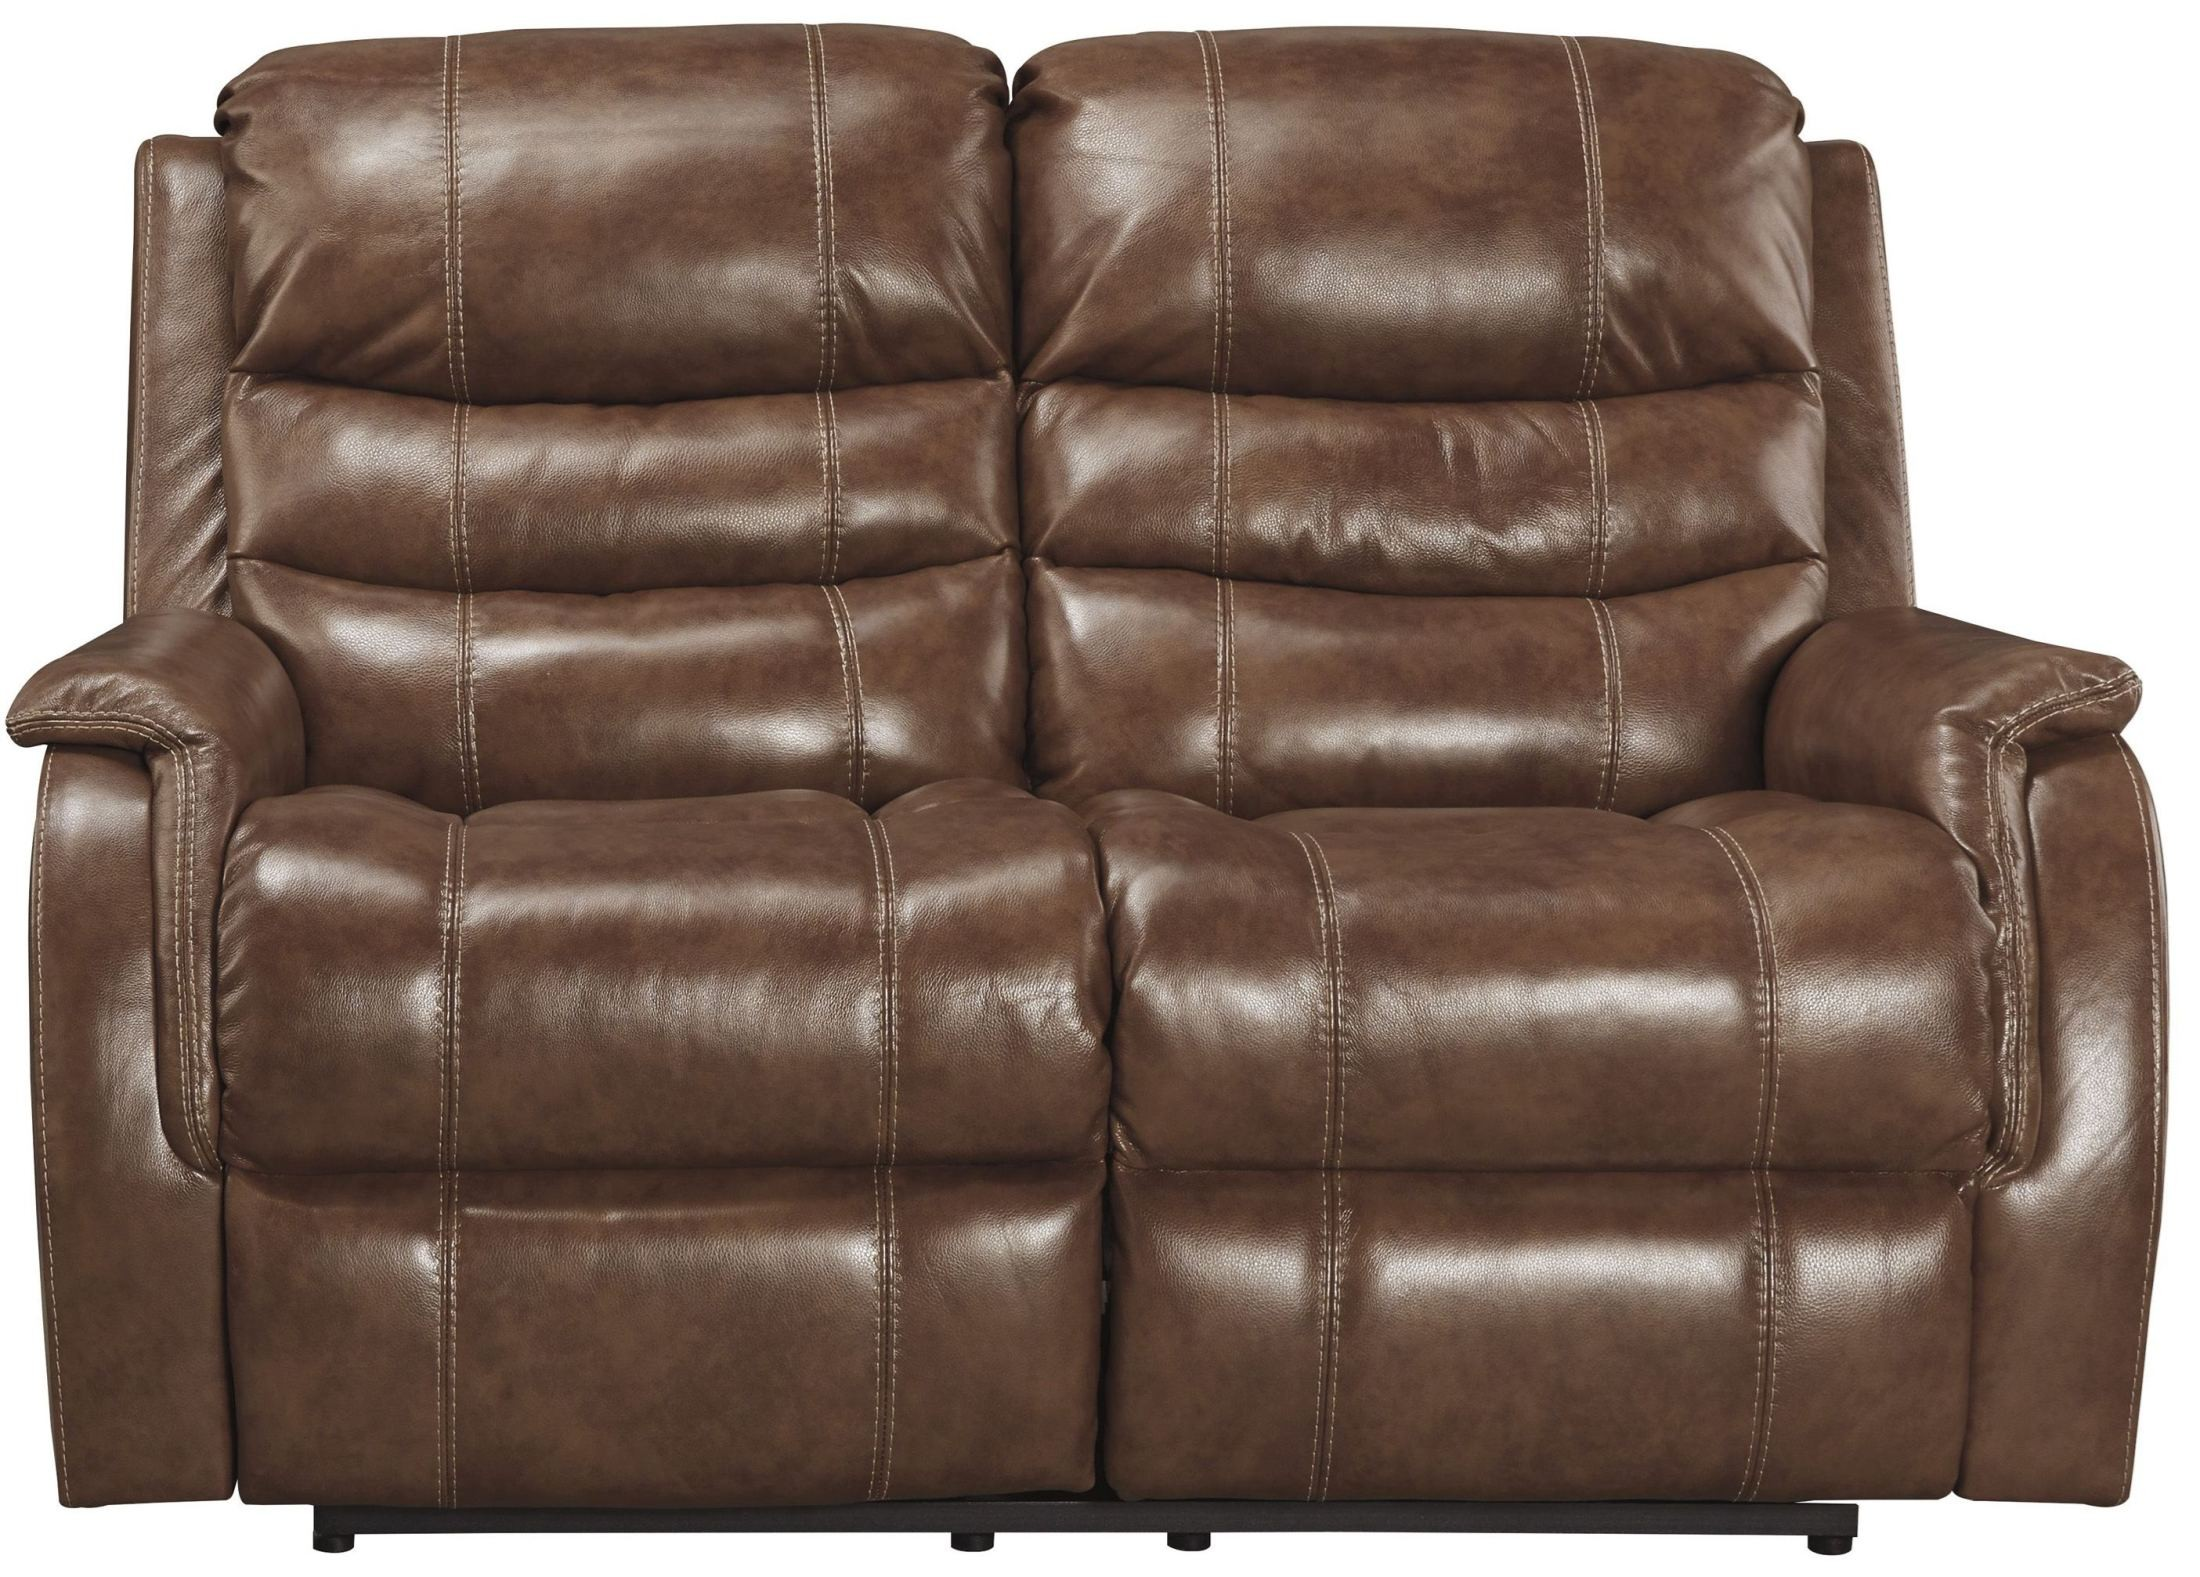 1655769  sc 1 st  Coleman Furniture & Metcalf Nutmeg Power Reclining Loveseat from Ashley | Coleman ... islam-shia.org